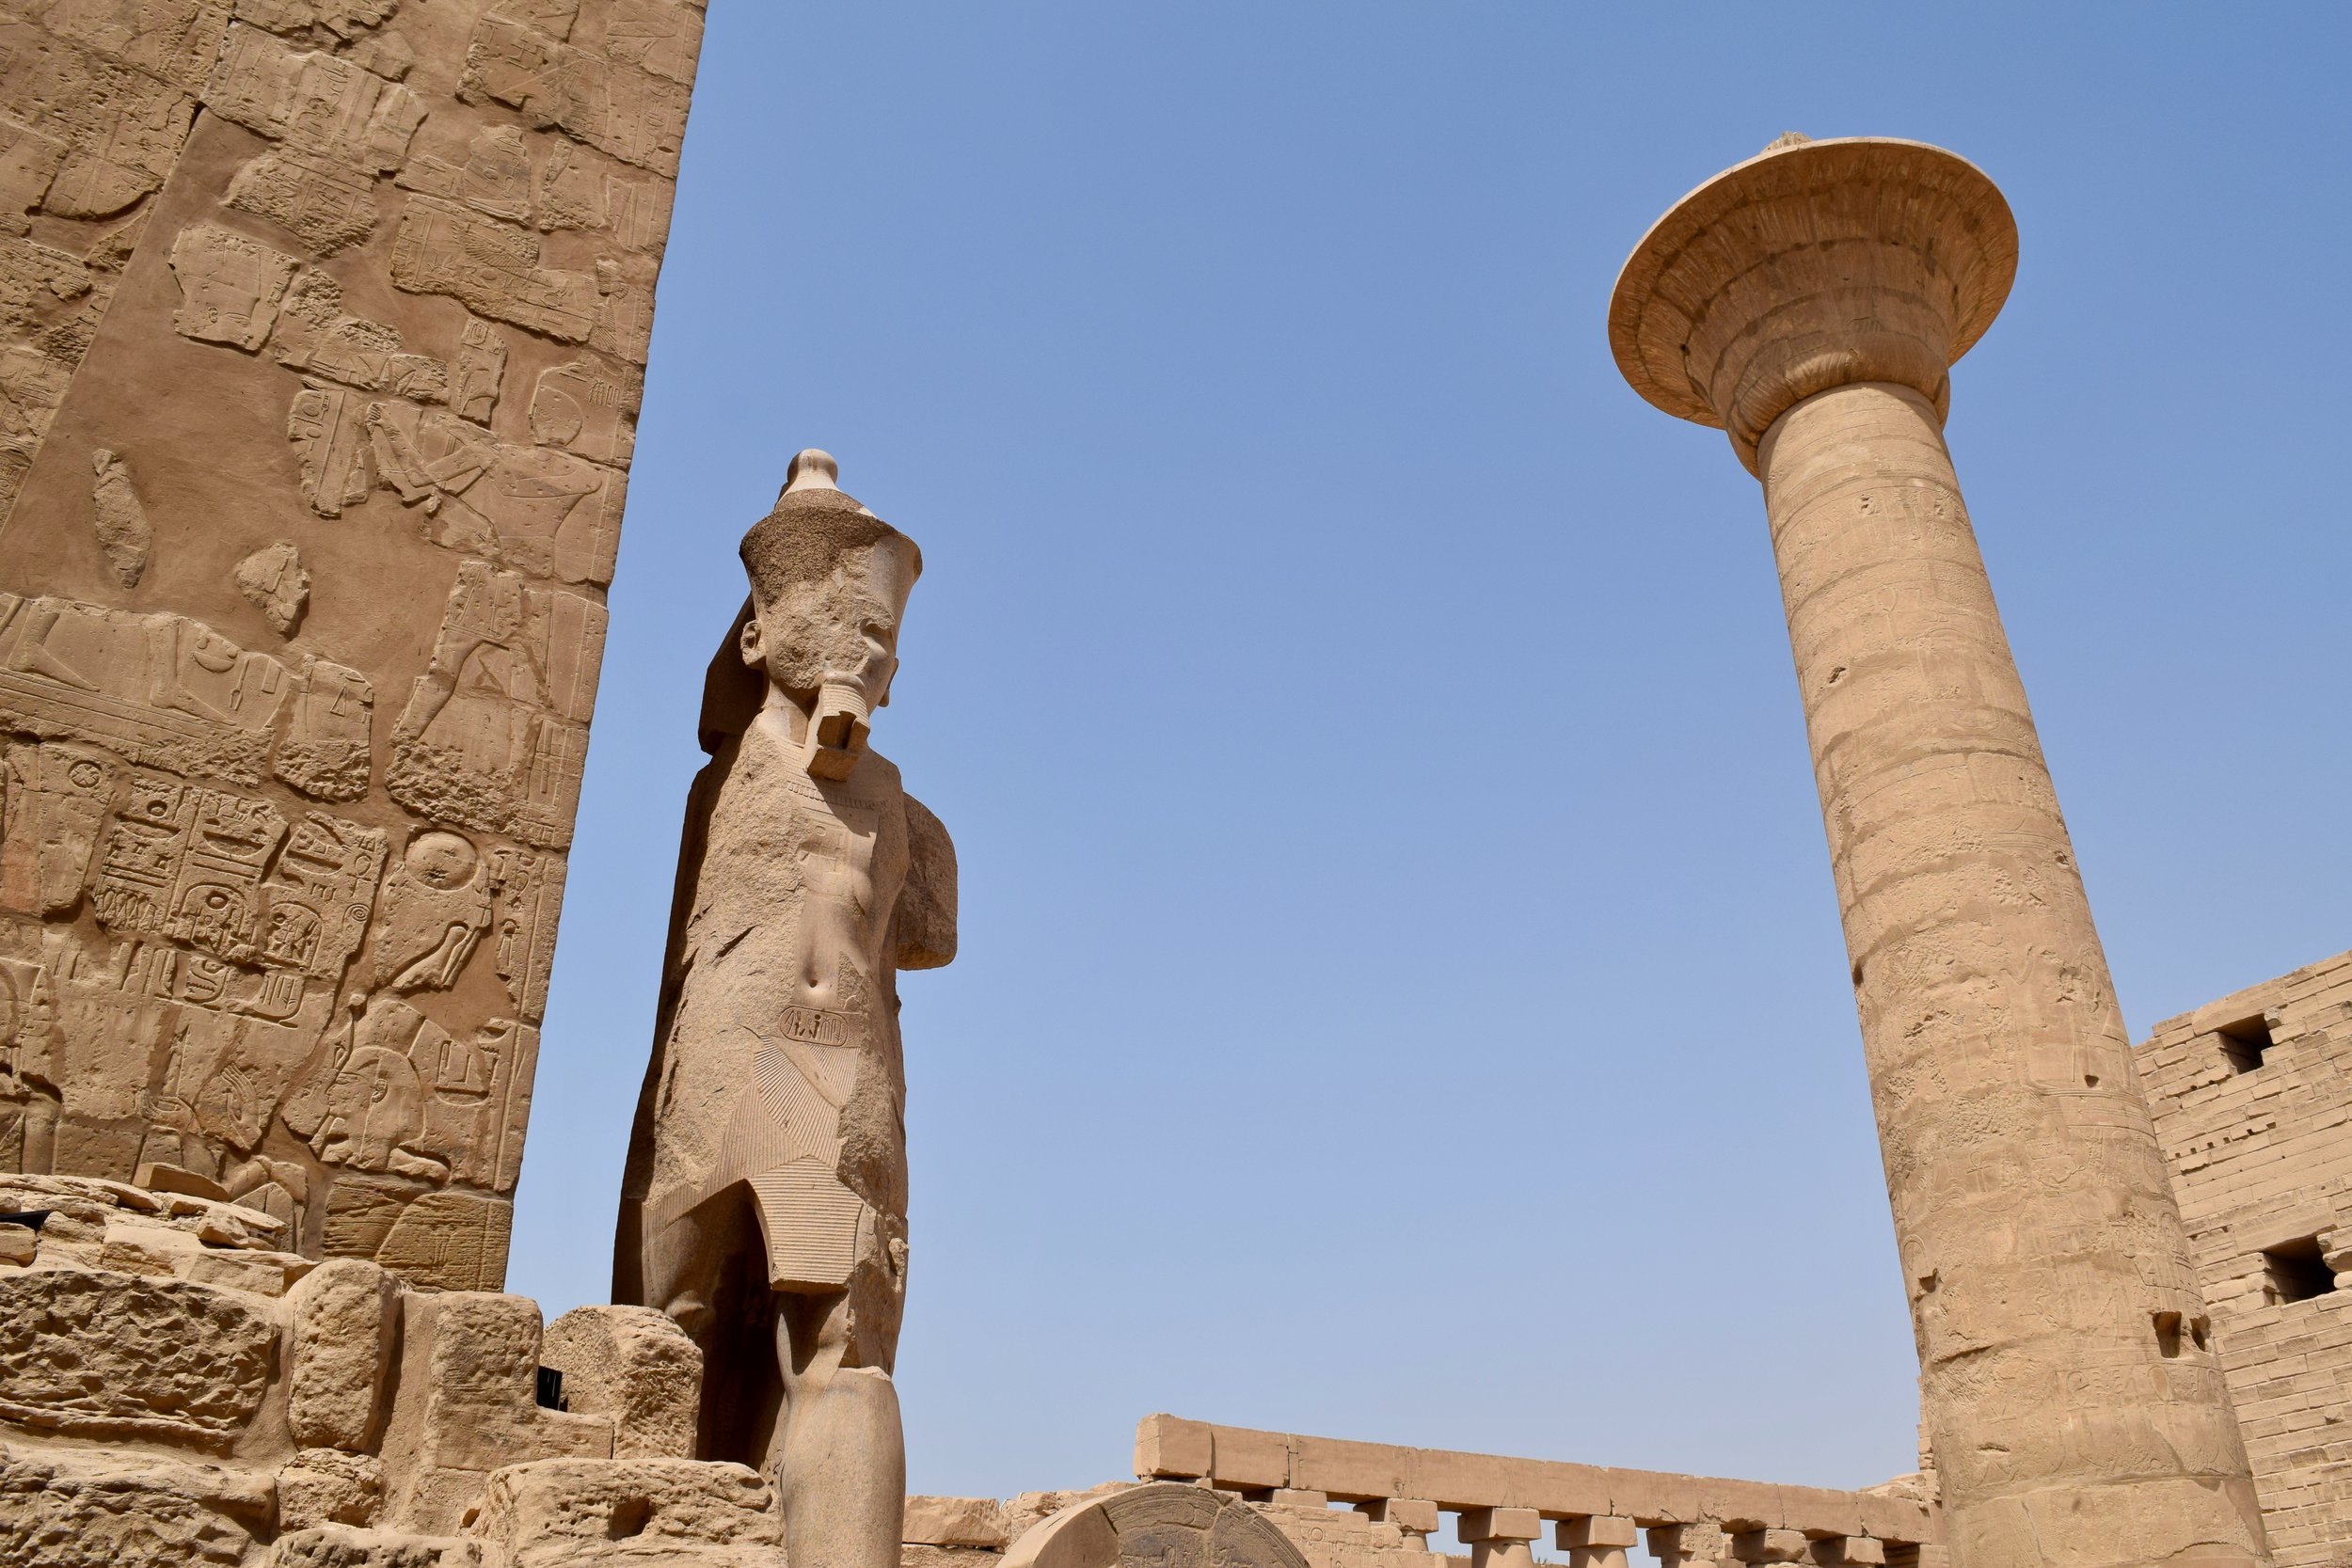 Statue of the Pharaoh with a column